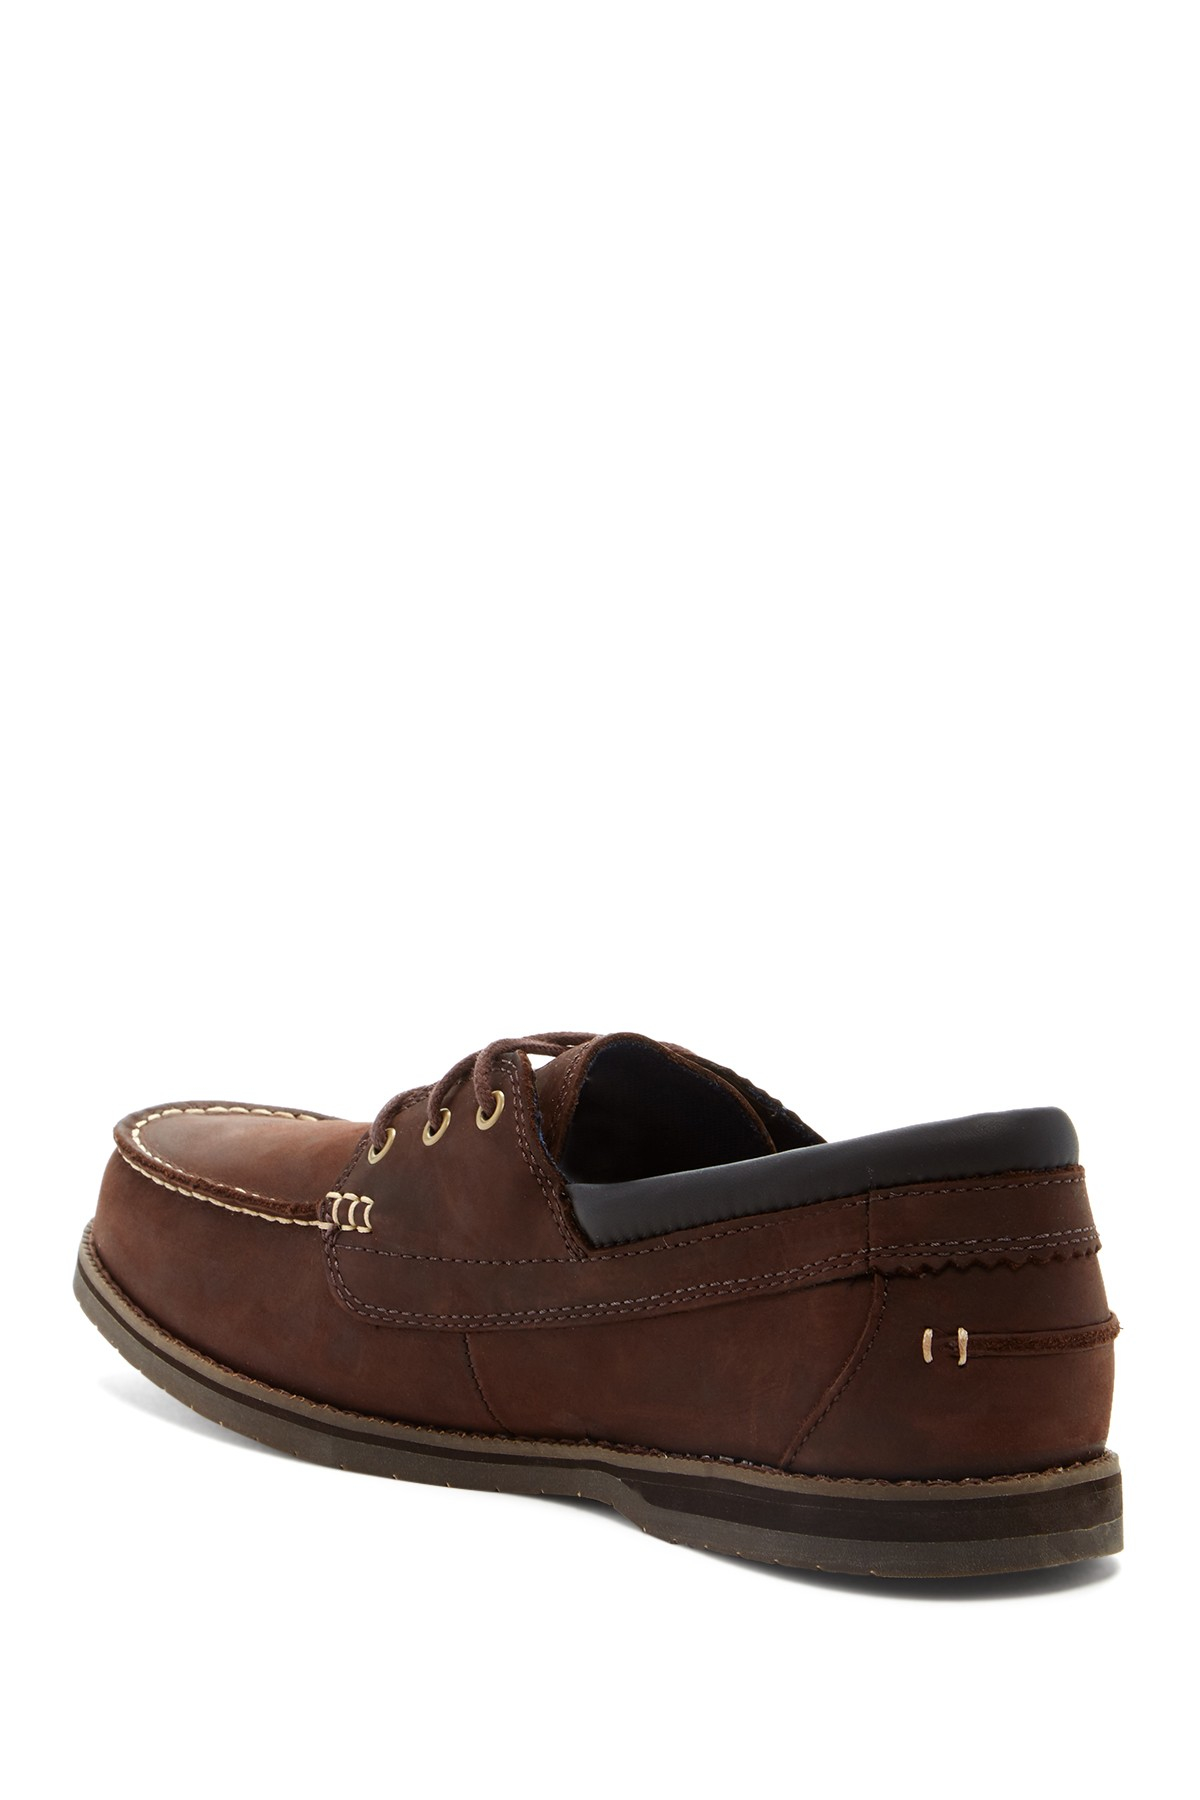 Timberland Alton Bay 3 Eye Boat Shoe In Brown For Men Lyst